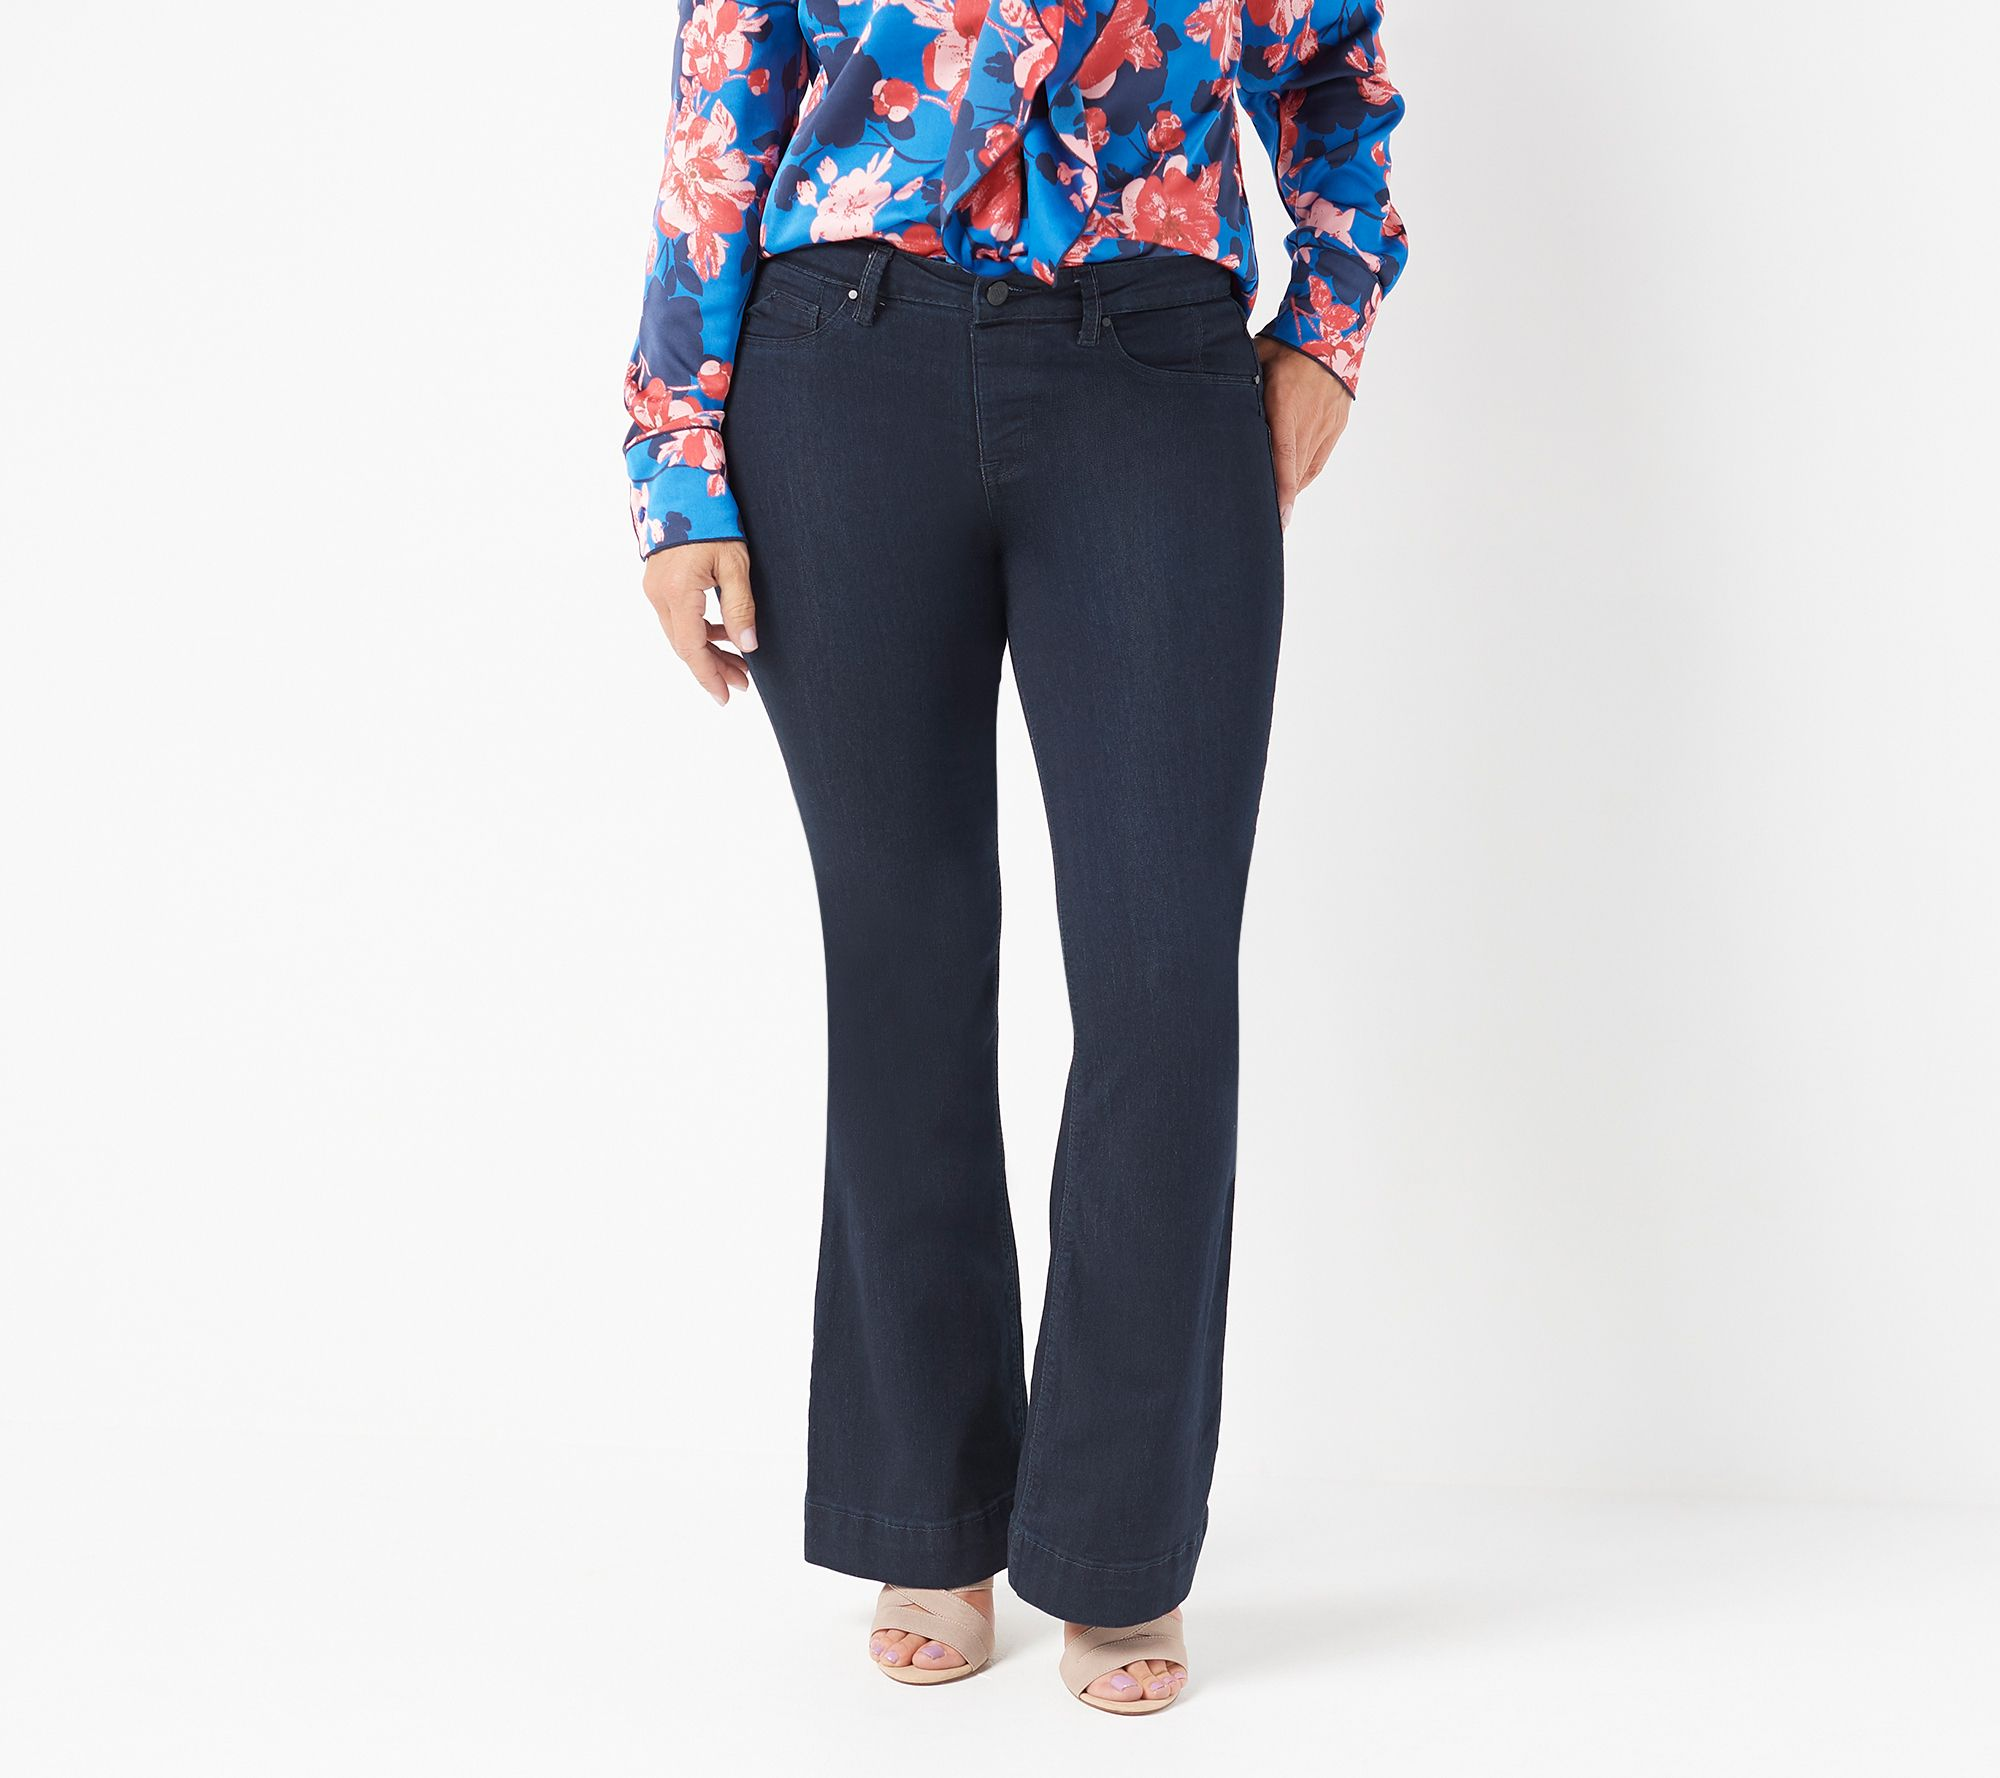 39d9d3e82fa7c Laurie Felt Petite Silky Denim Flare Pull-On Jeans - Page 1 — QVC.com